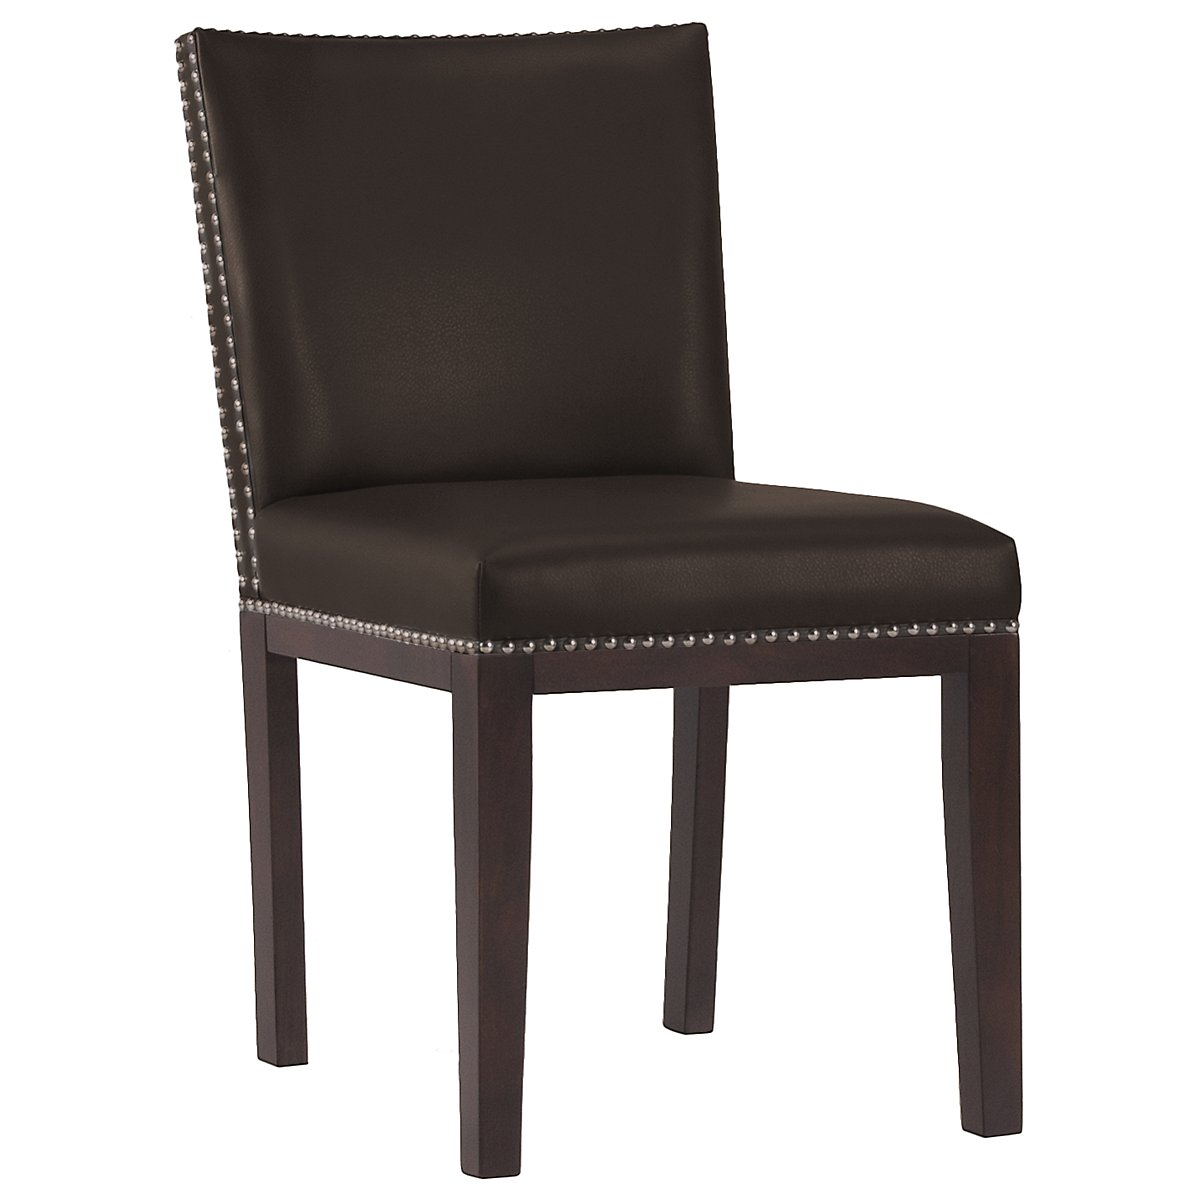 Tiffany Dk Brown Bonded Leather Side Chair